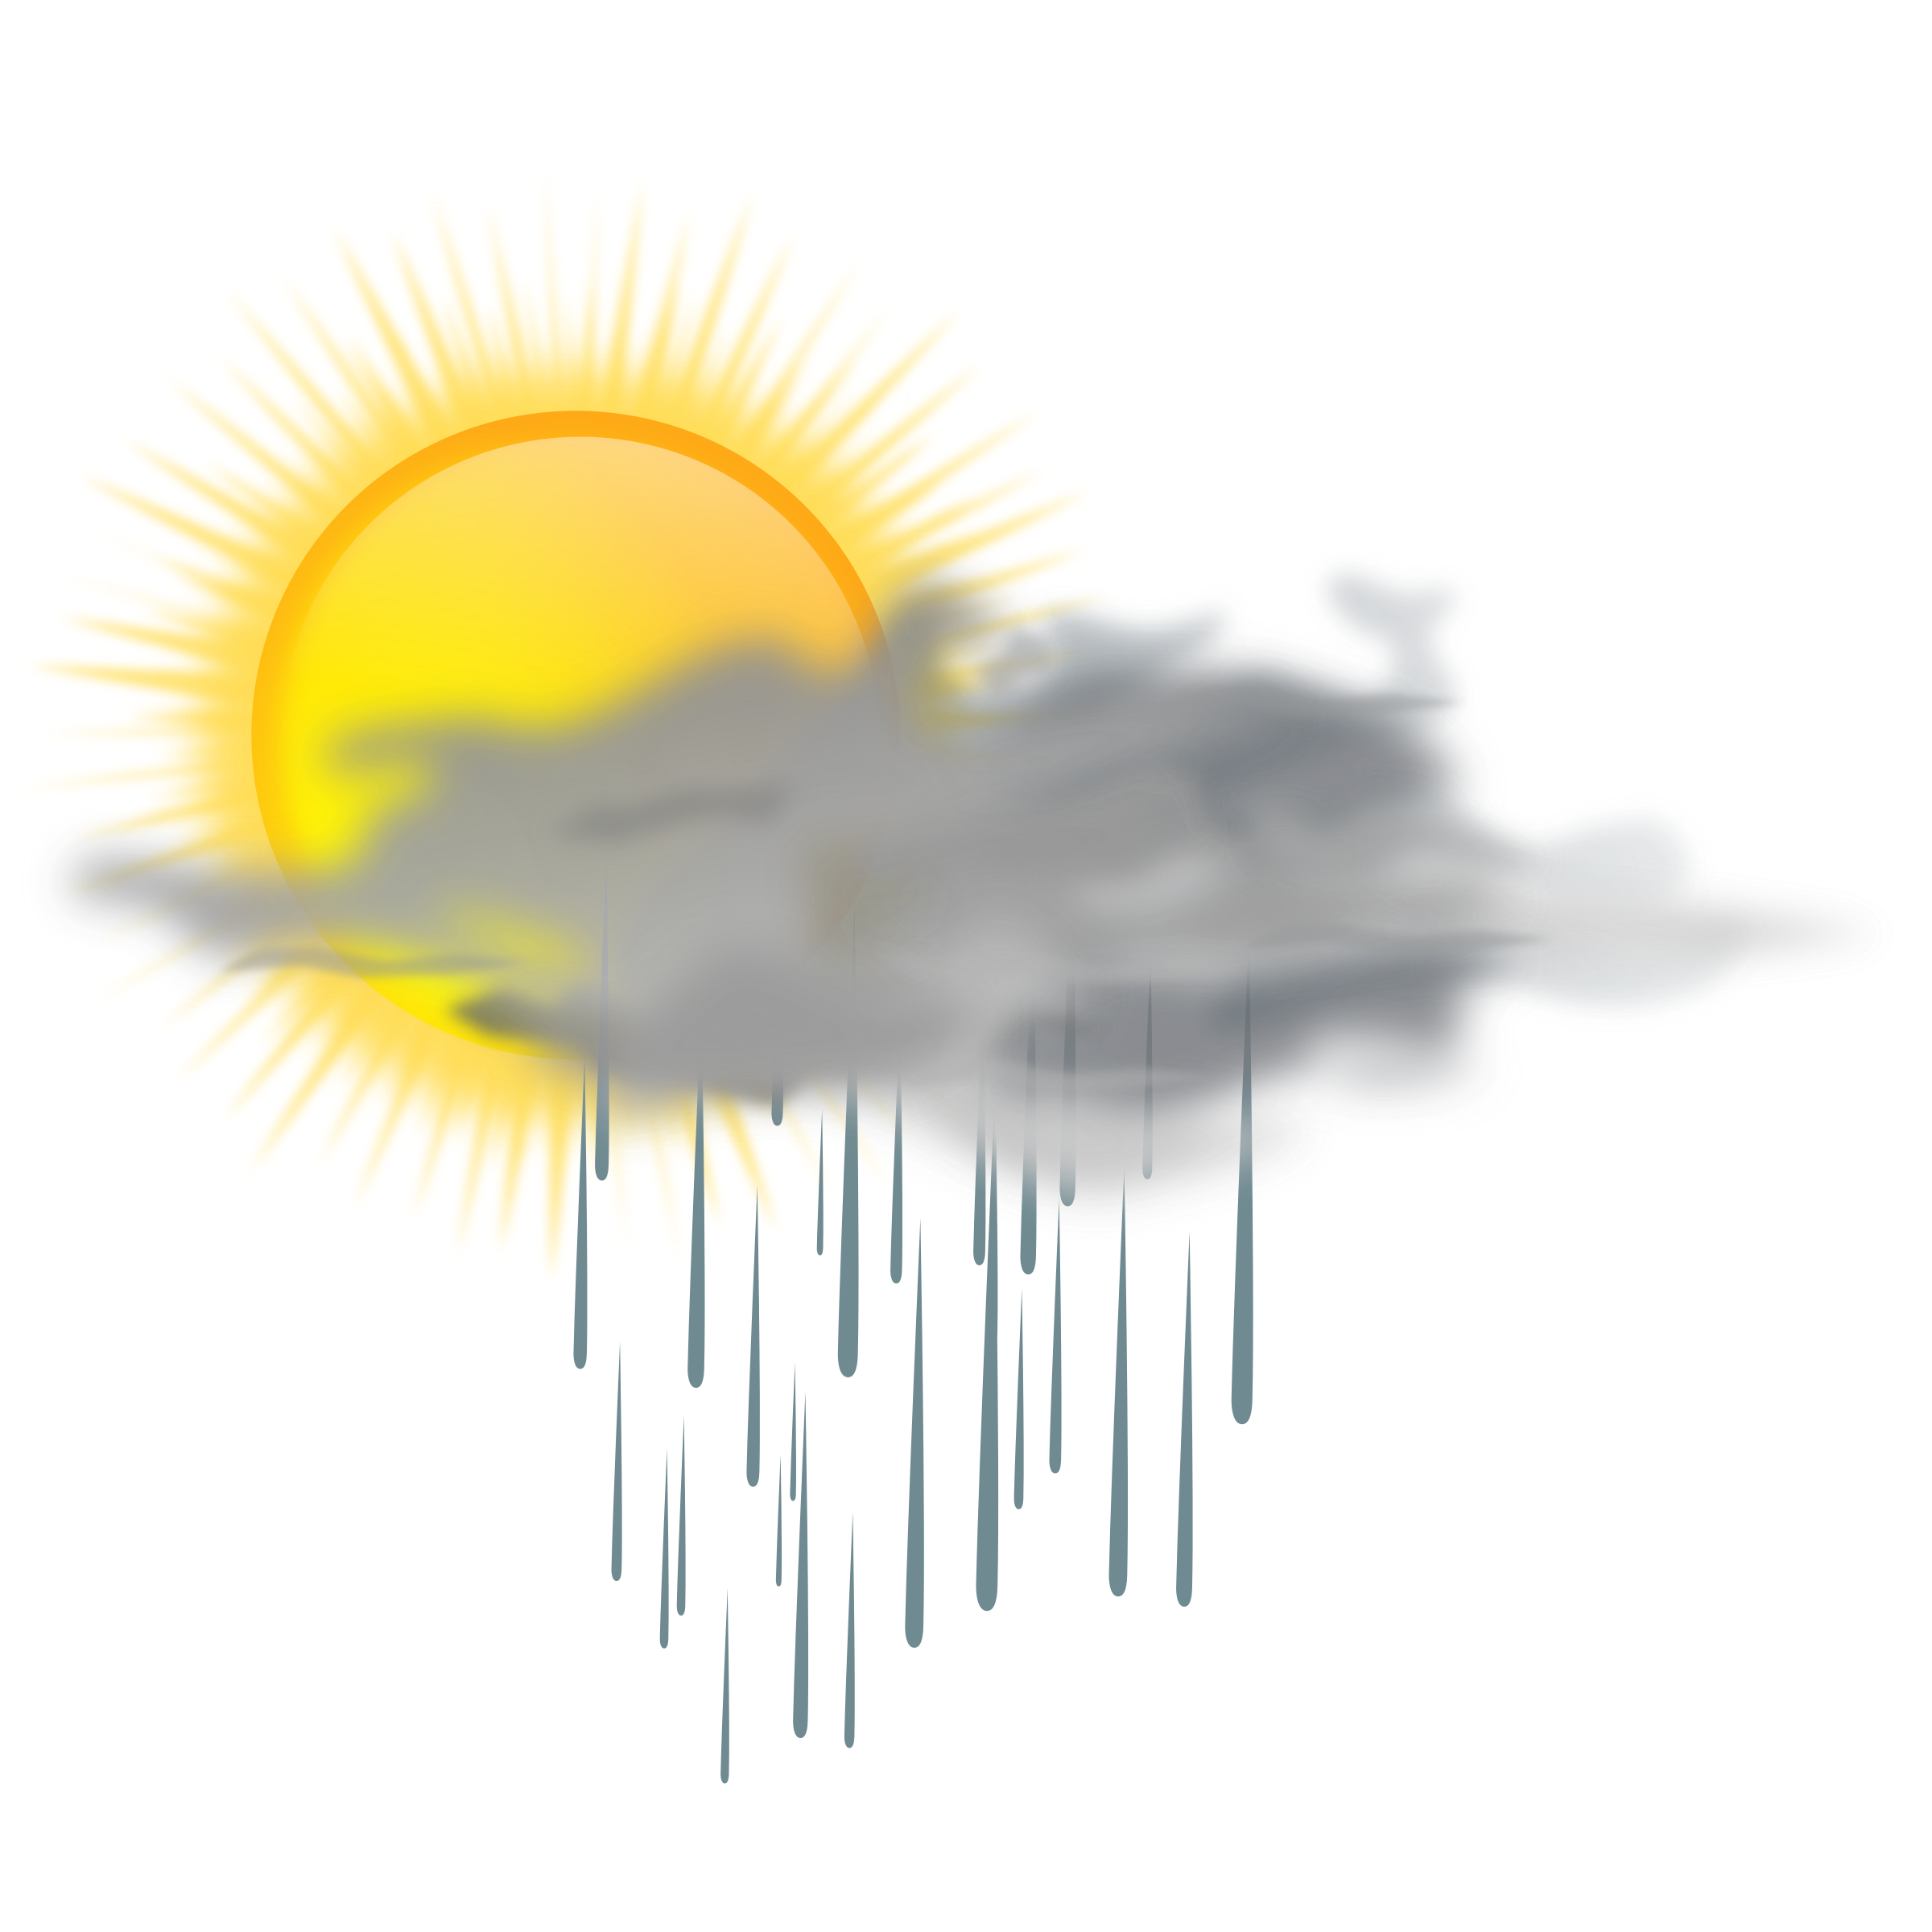 weather icon - sun rain by gnokii